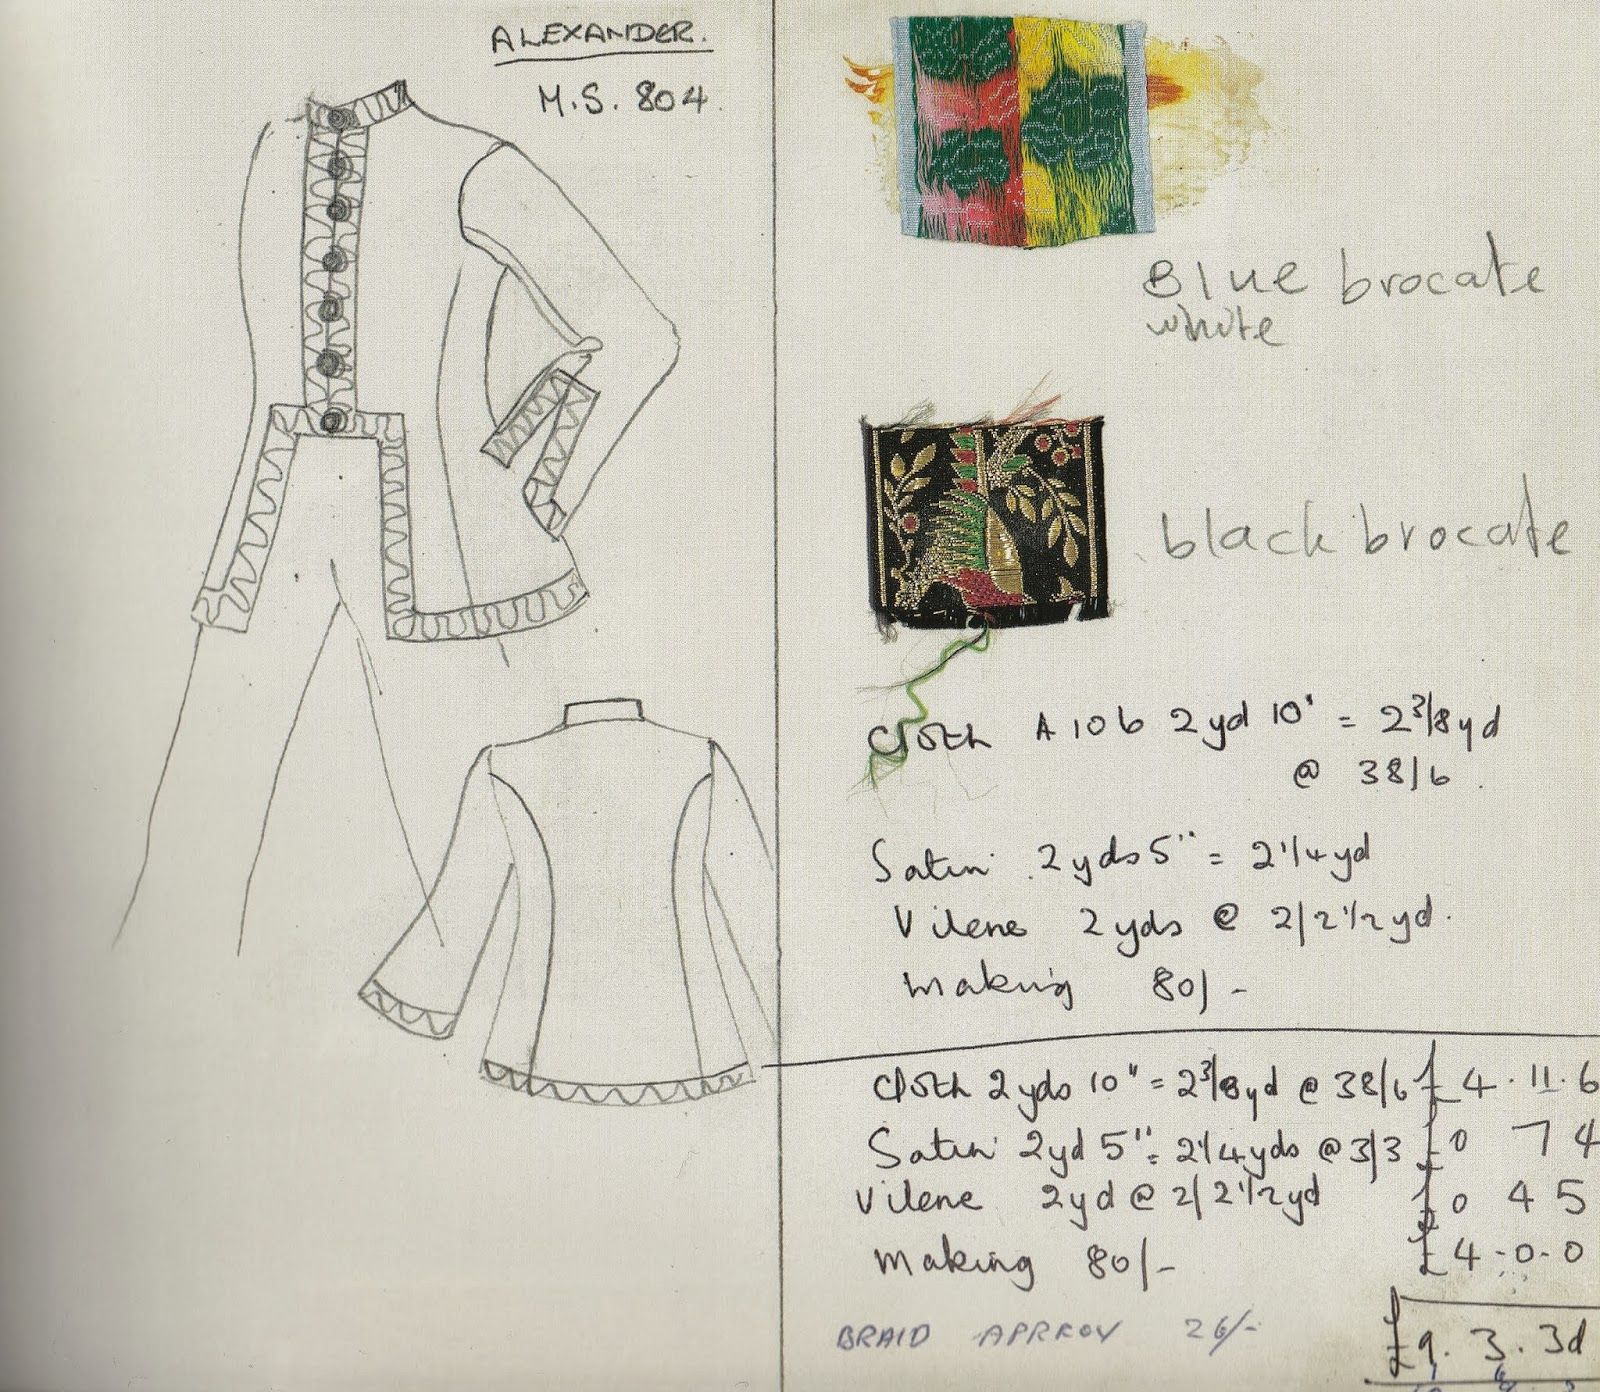 p_Costing details from John Lyndon's book detailing all the expenses for various Fool clothing items0006.jpg (1600×1392)